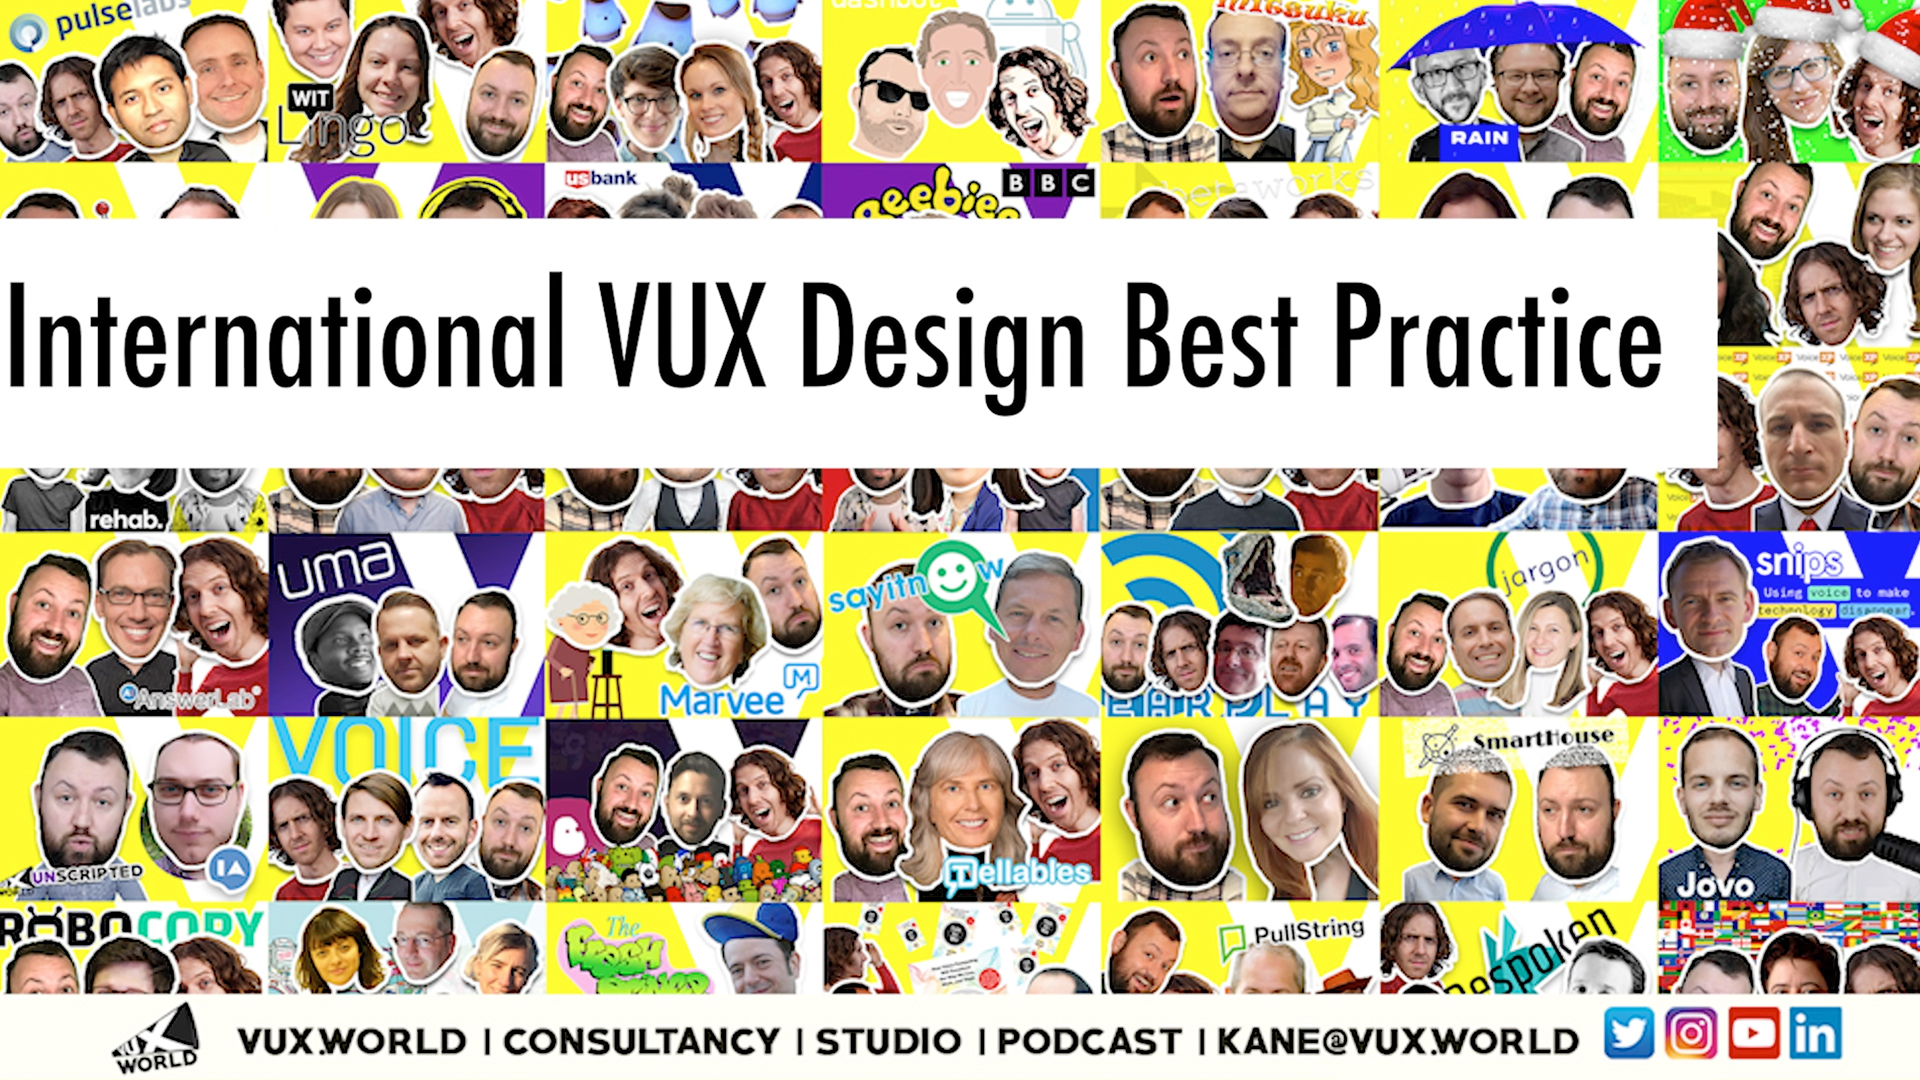 International VUX design best practice YouTube thumbnail